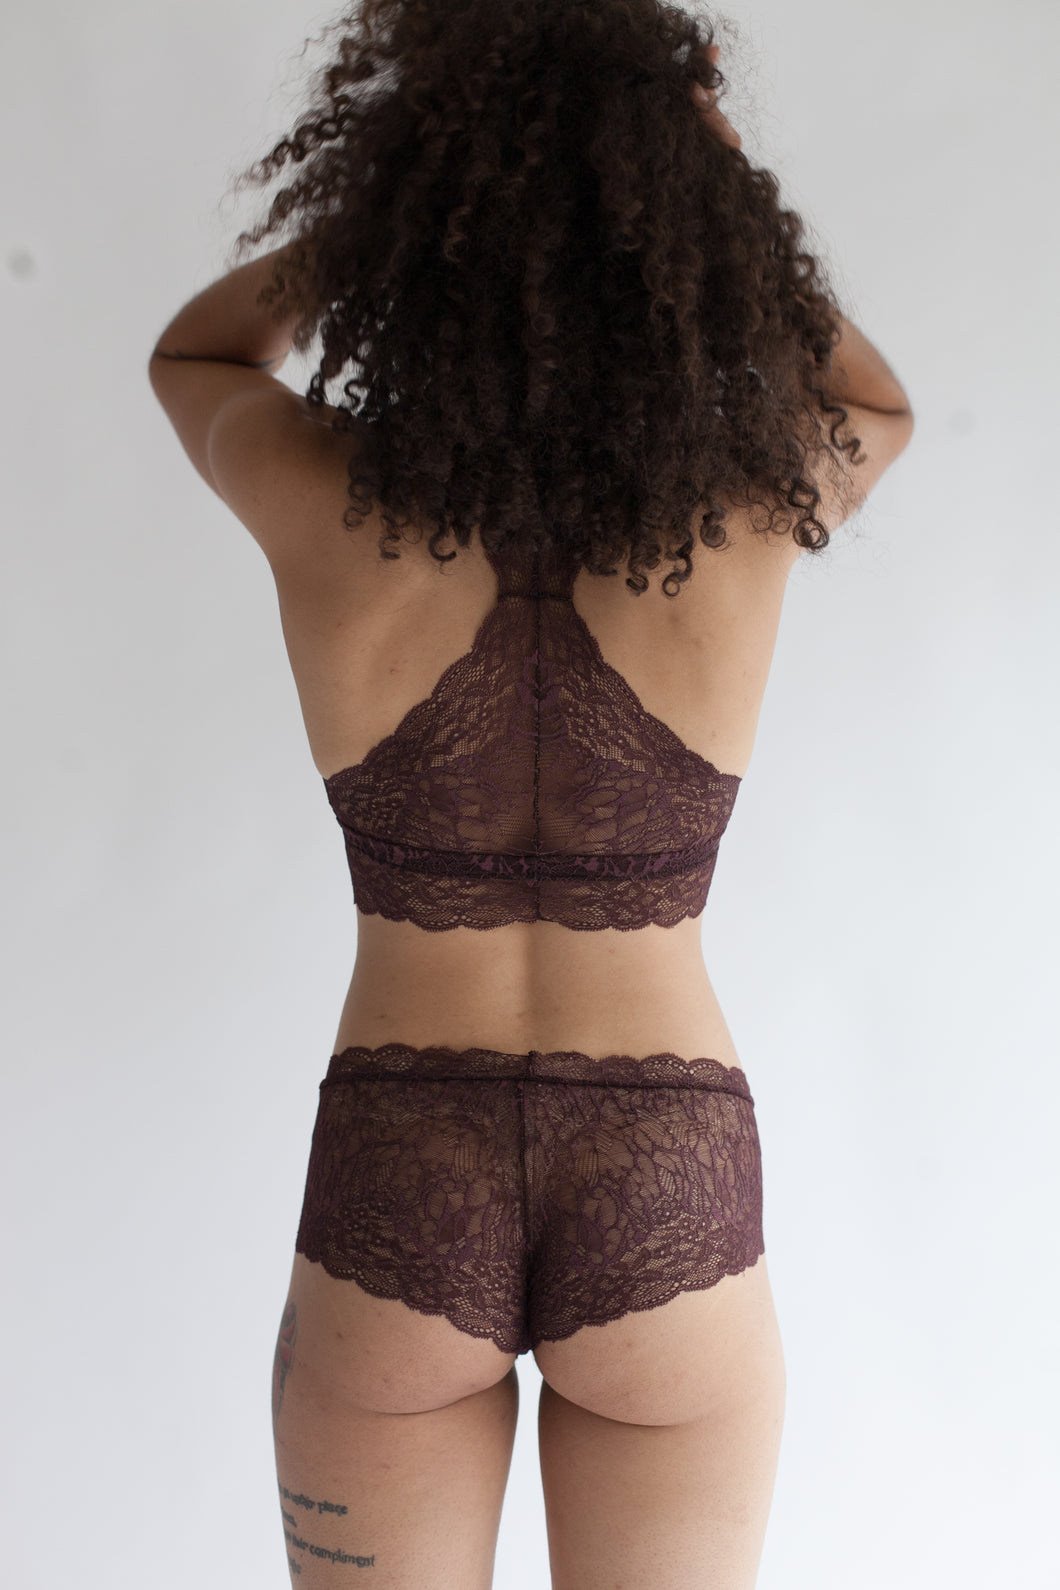 Lace Boy Short in Low Rise or High Rise Cut in Sheer Burnt Umber Color